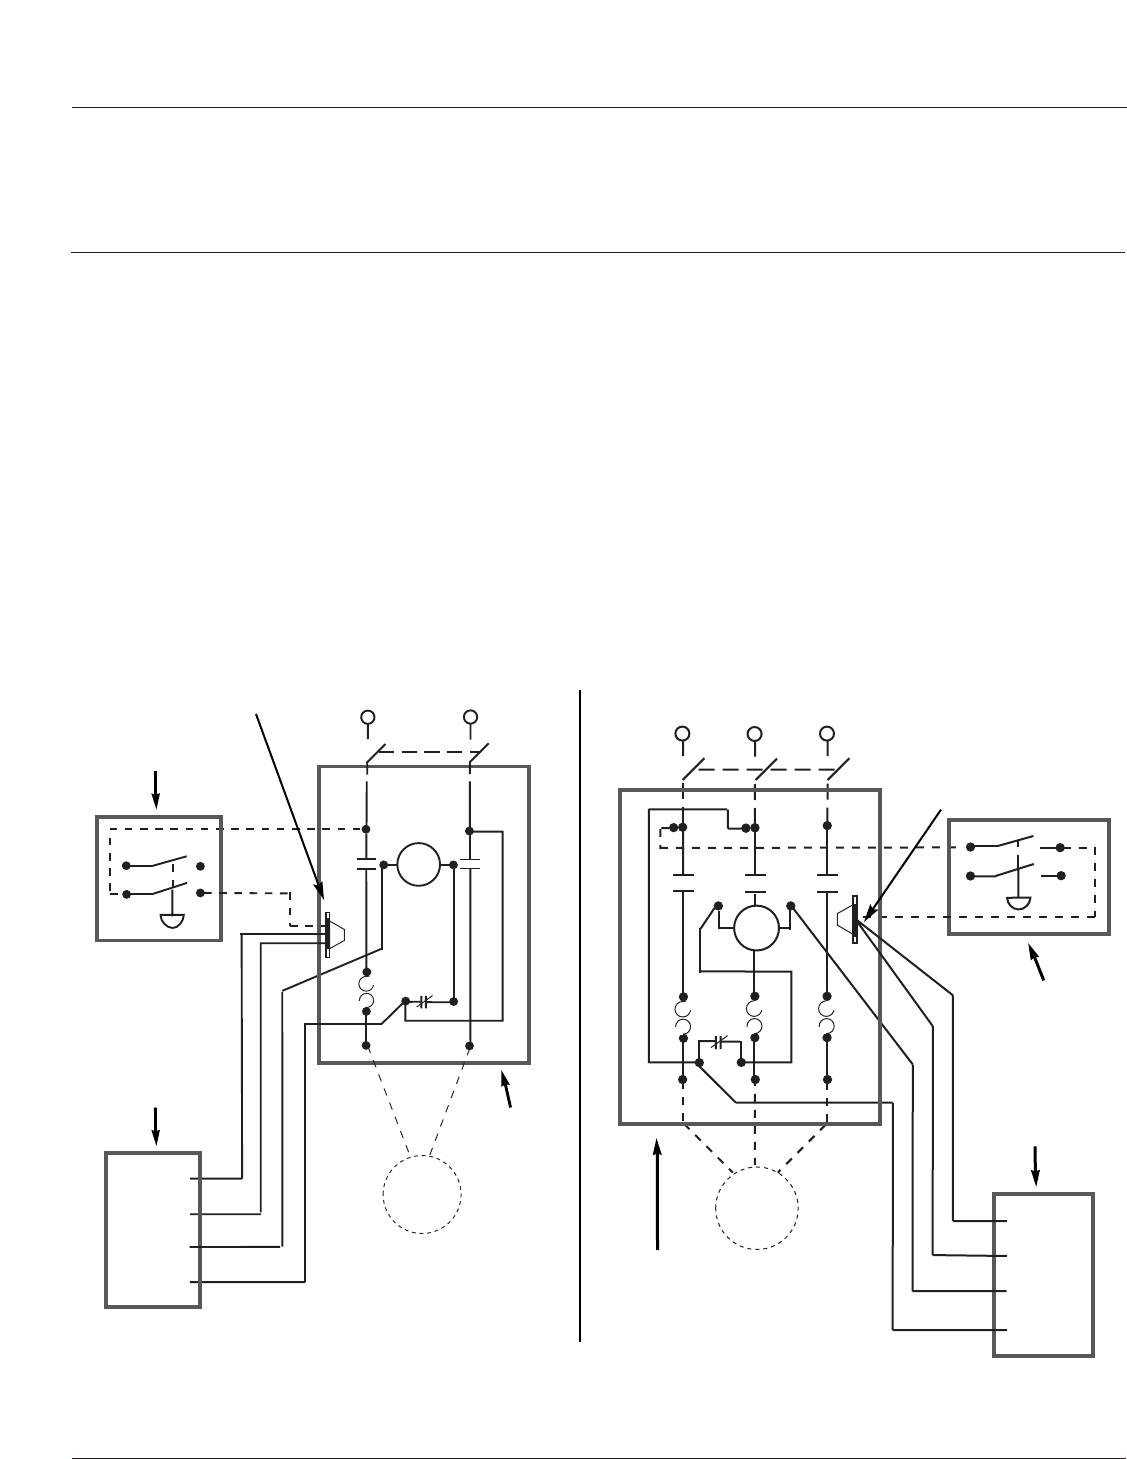 Wiring Diagram  30 Campbell Hausfeld Air Compressor Wiring Diagram